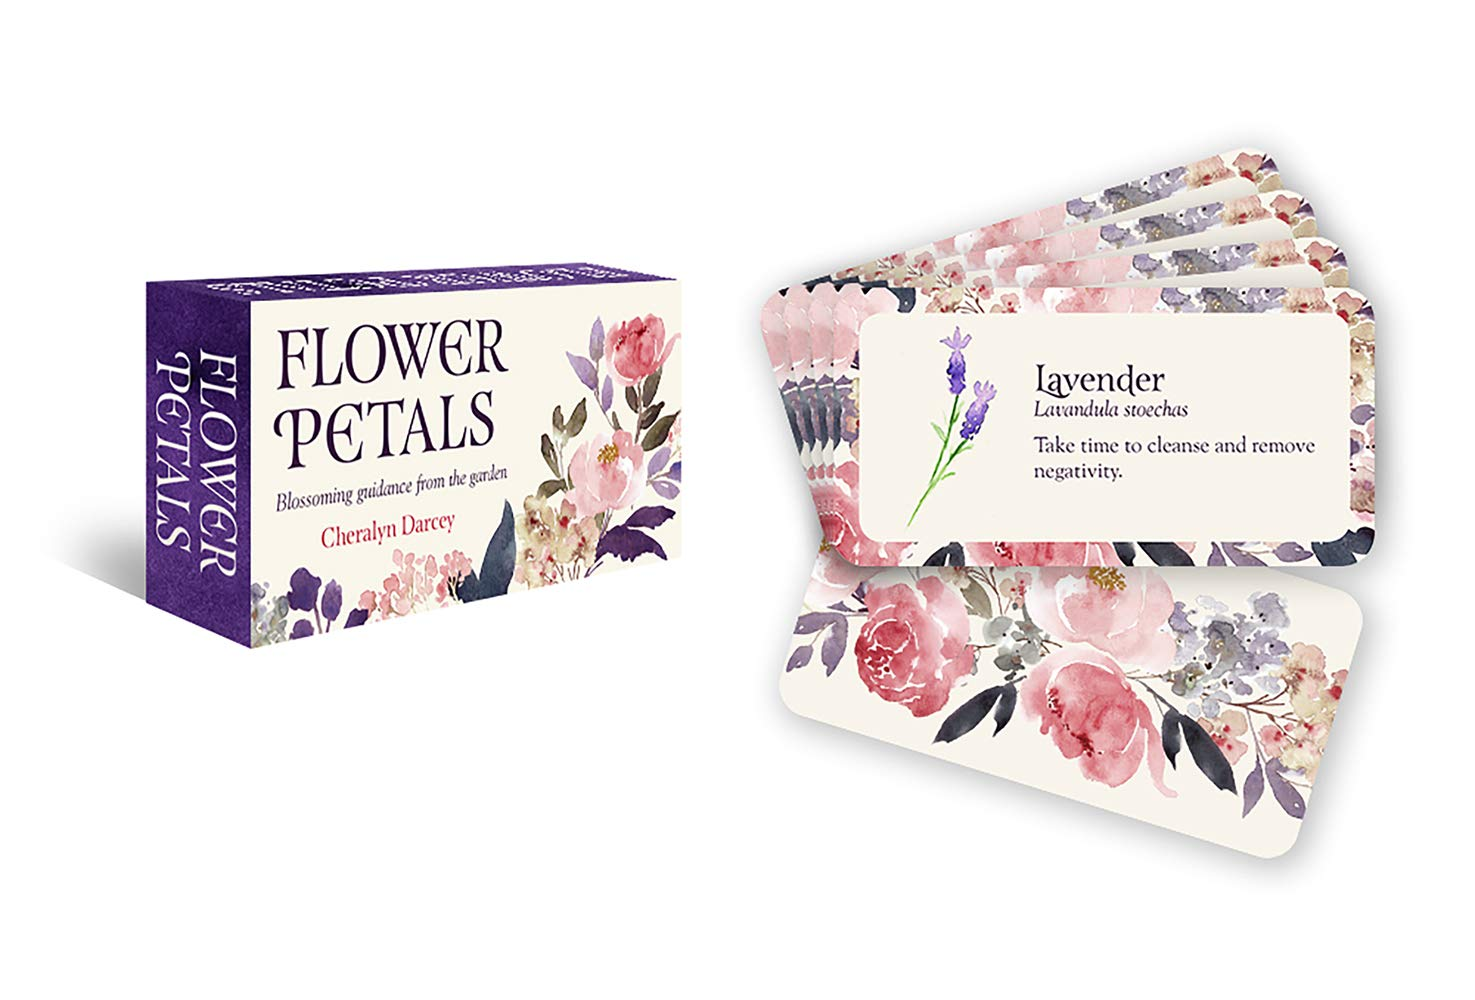 FLOWER PETALS INSPIRATION CARD